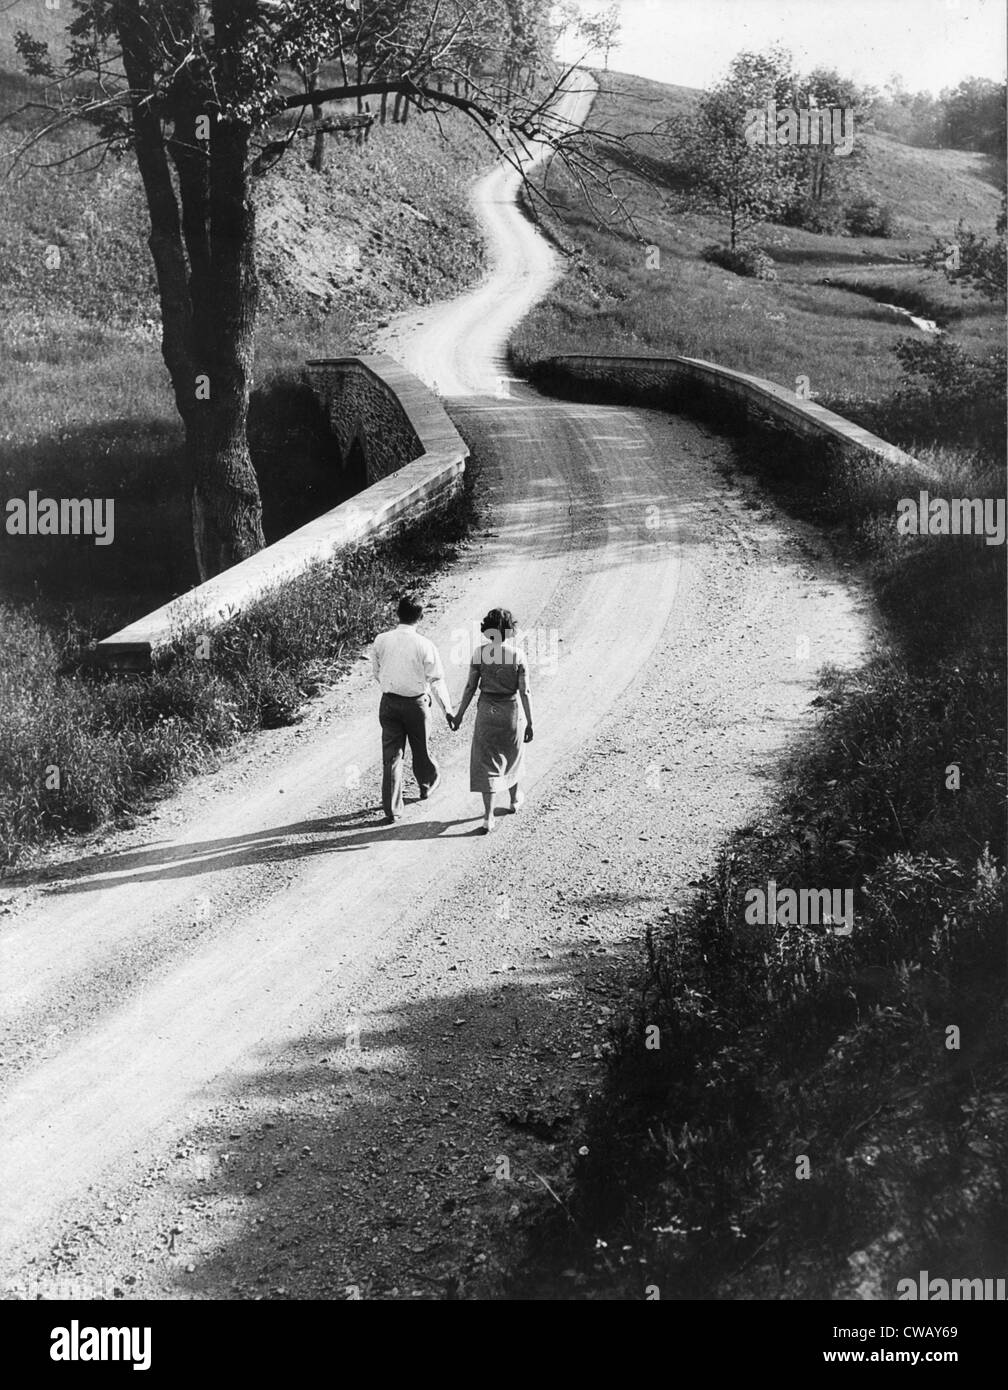 A country road in Pennsylvania, by Philip D. Gendreau, 1930-1935. - Stock Image